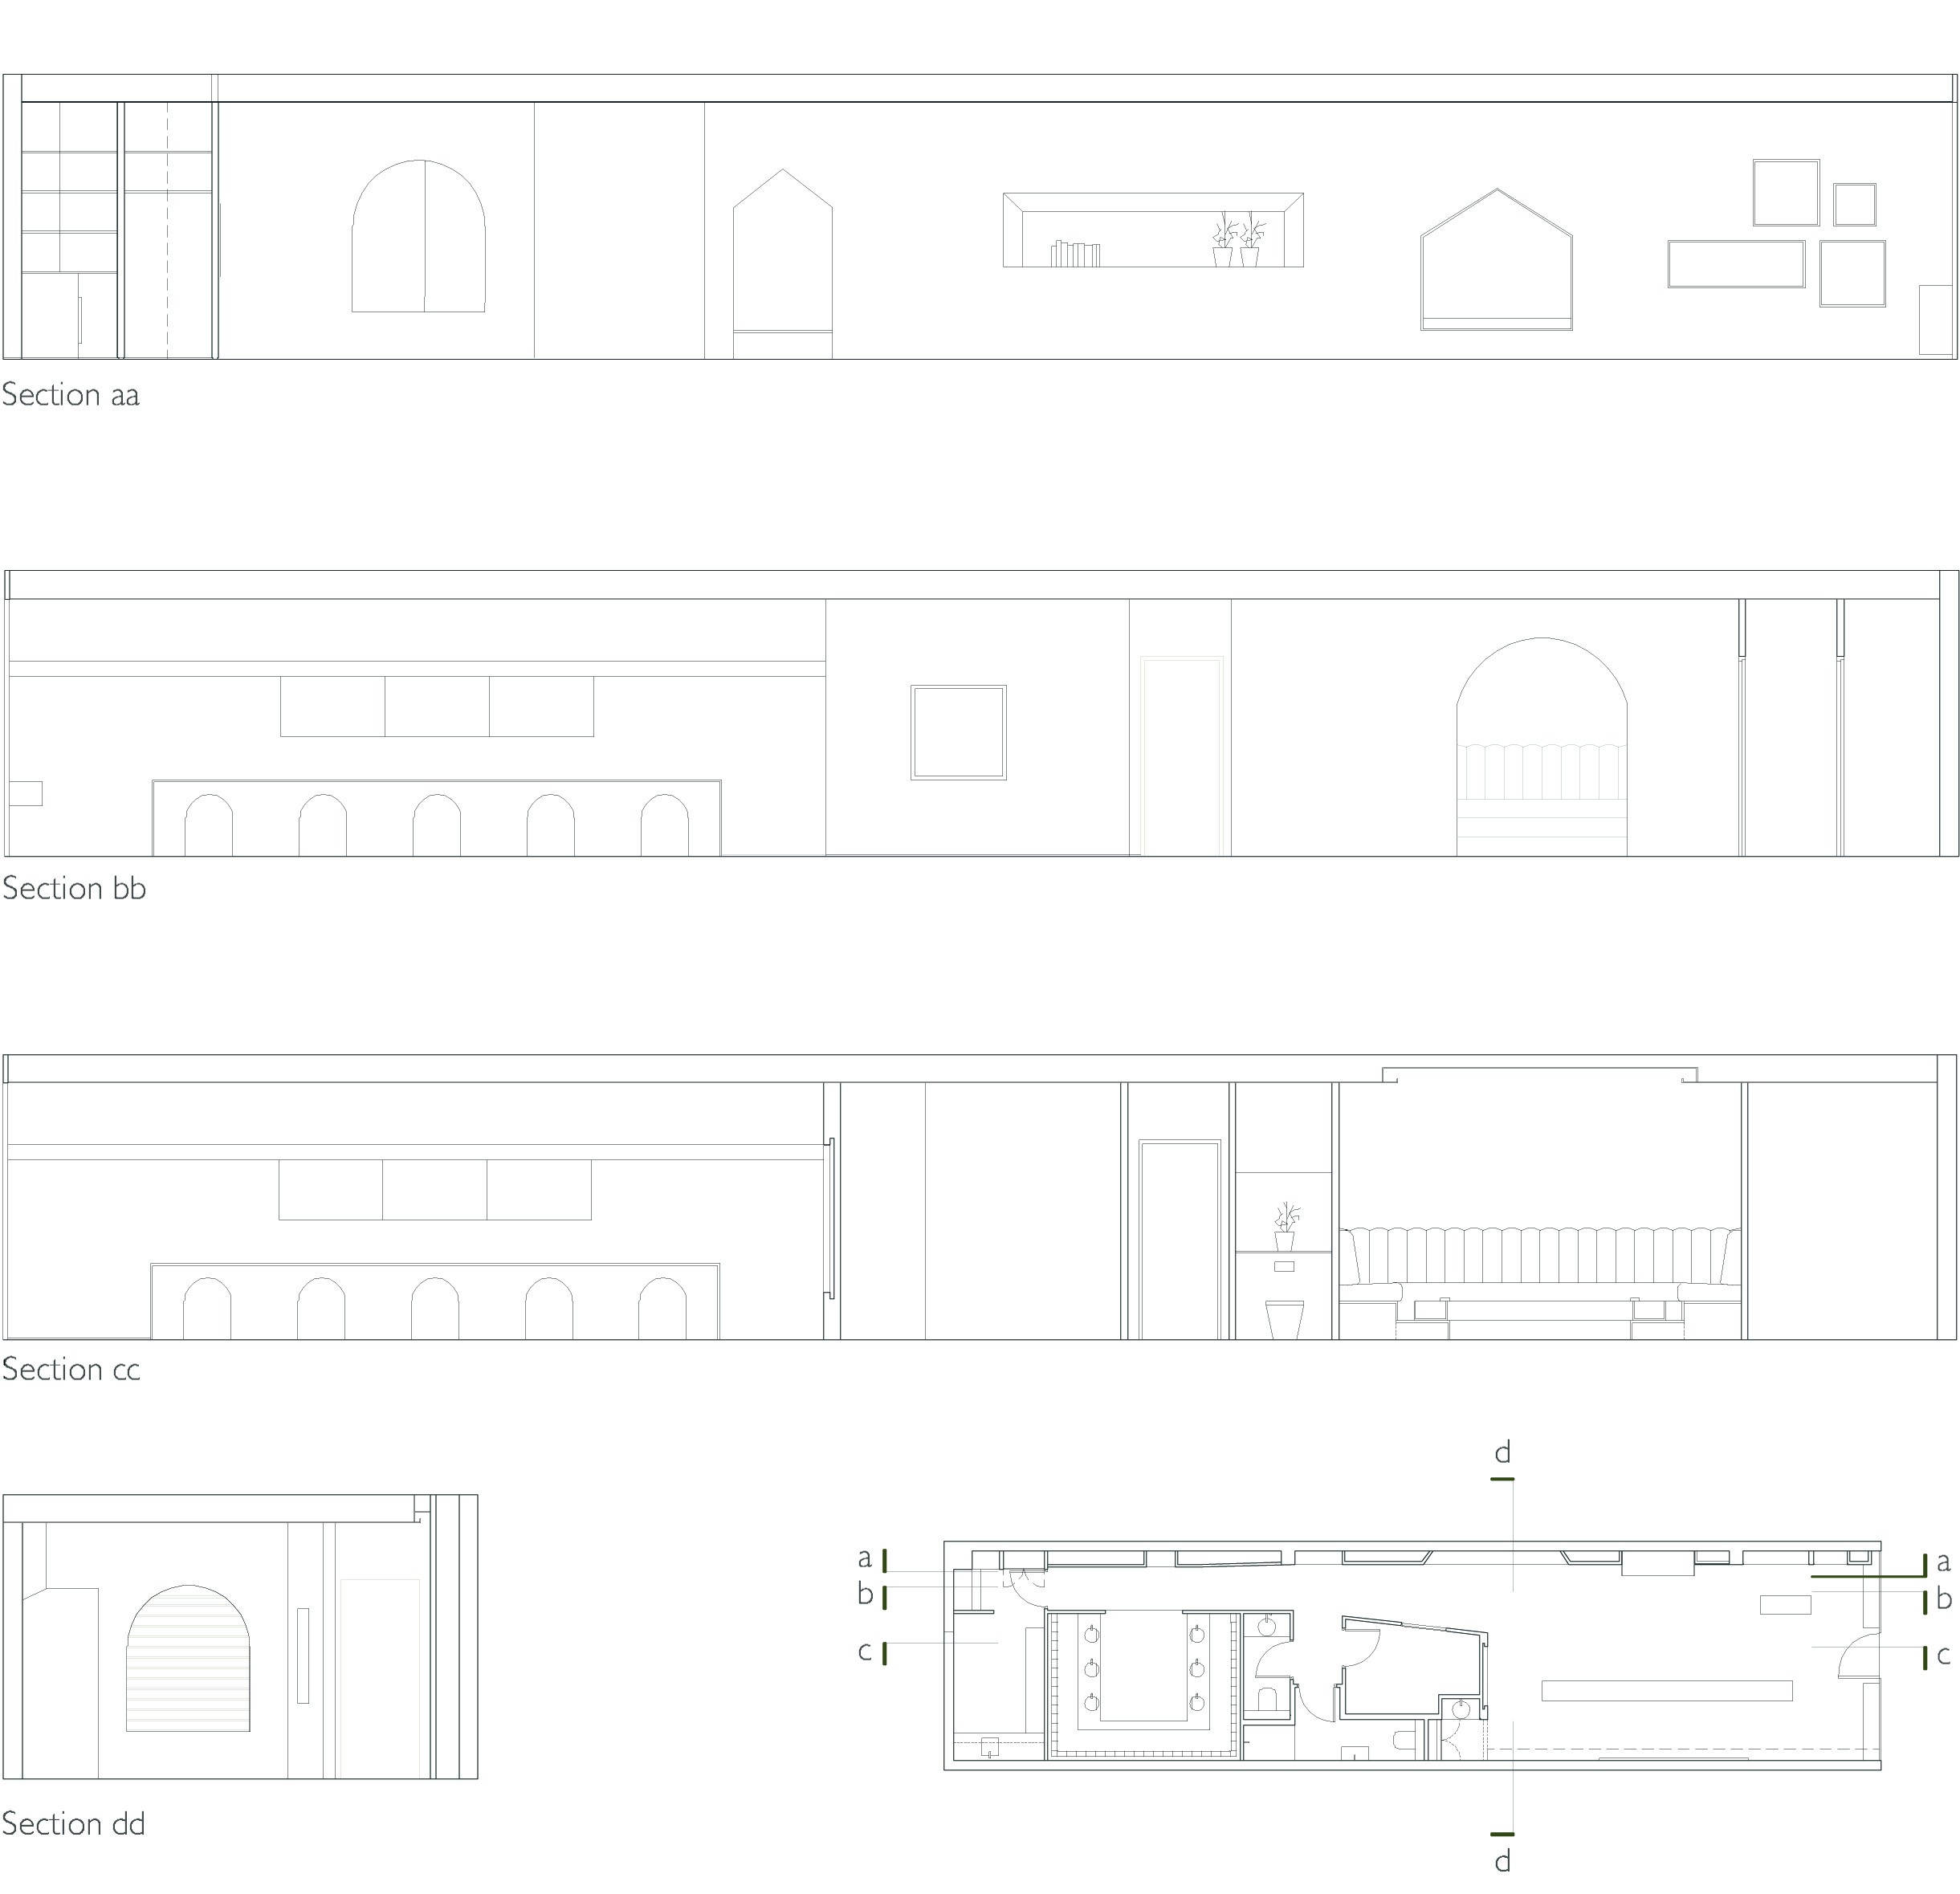 Sections Drawings of the Nail Salon